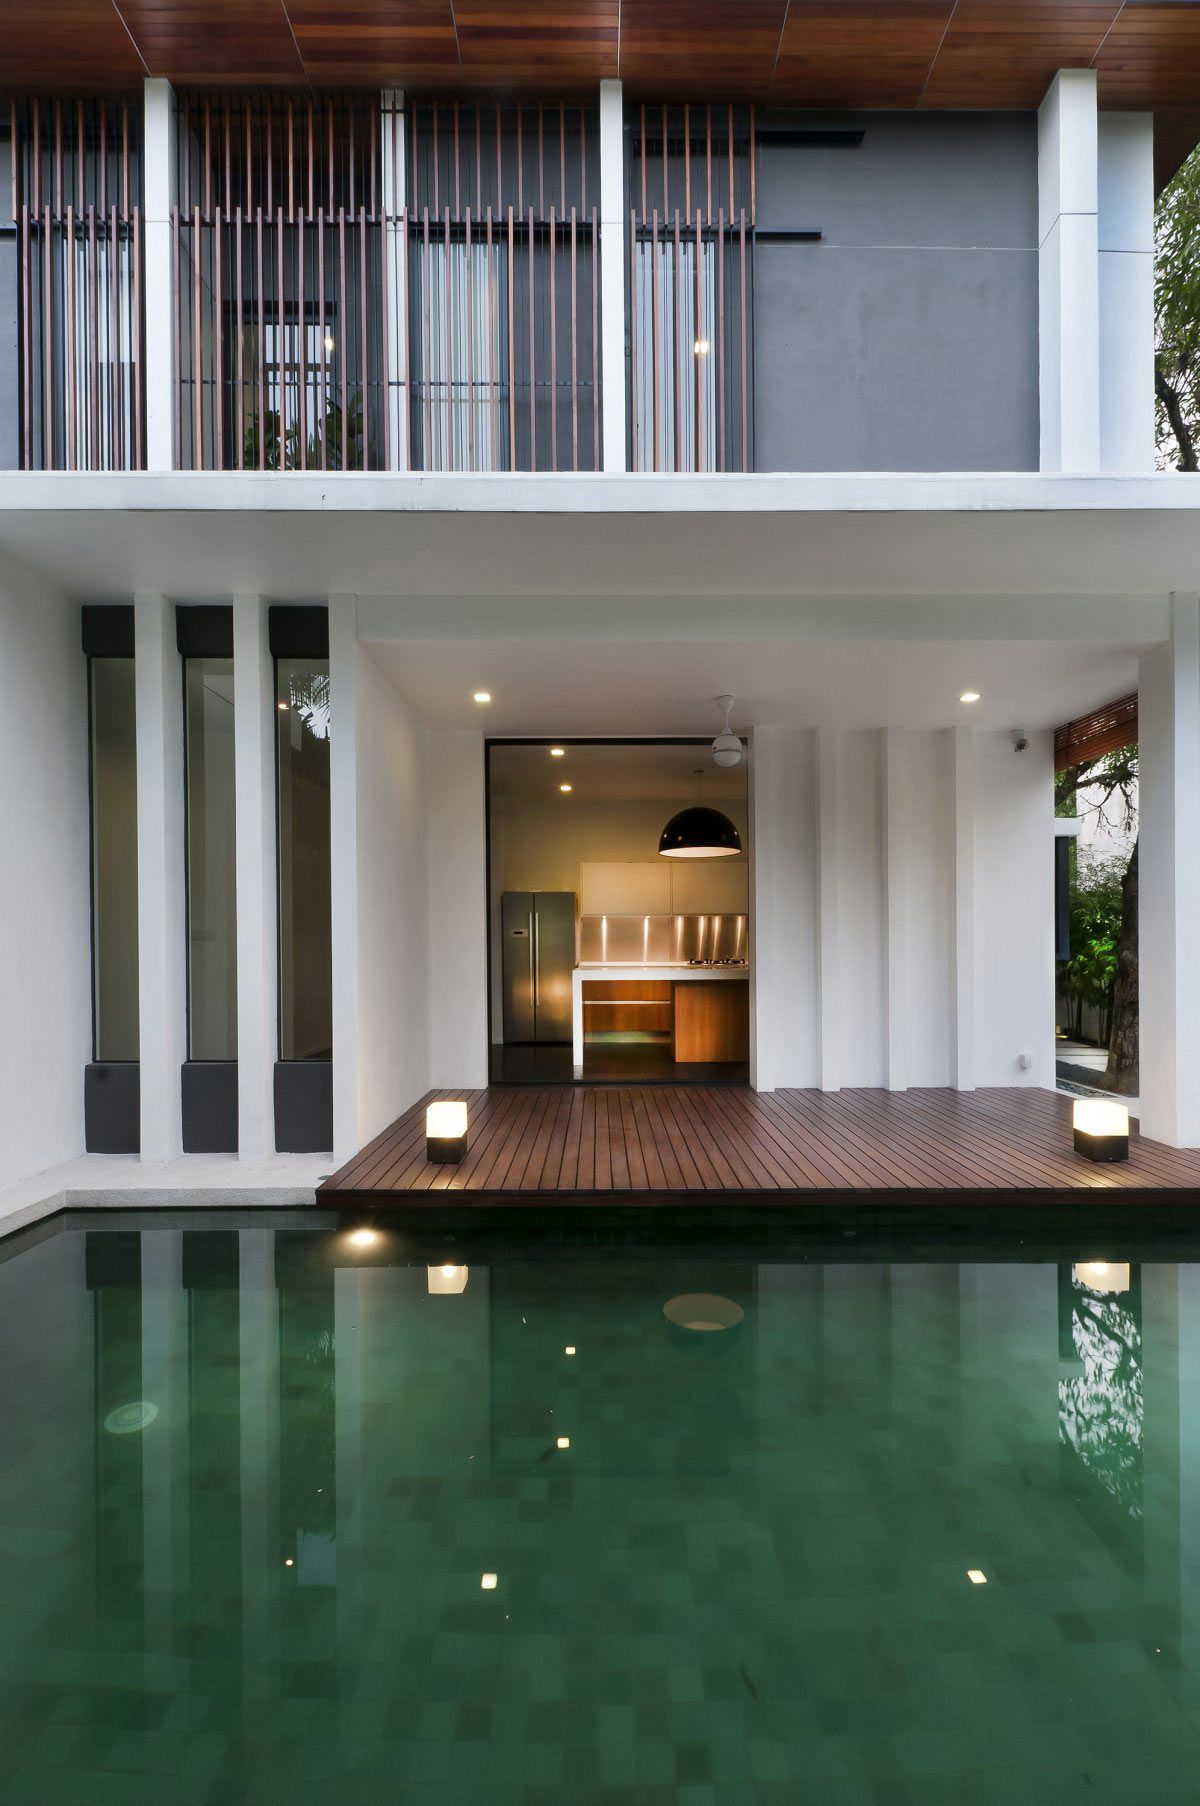 Pool Deck Lighting Modern Home In Kuala Lumpur Contemporary House Design Interior Architecture Design House Design